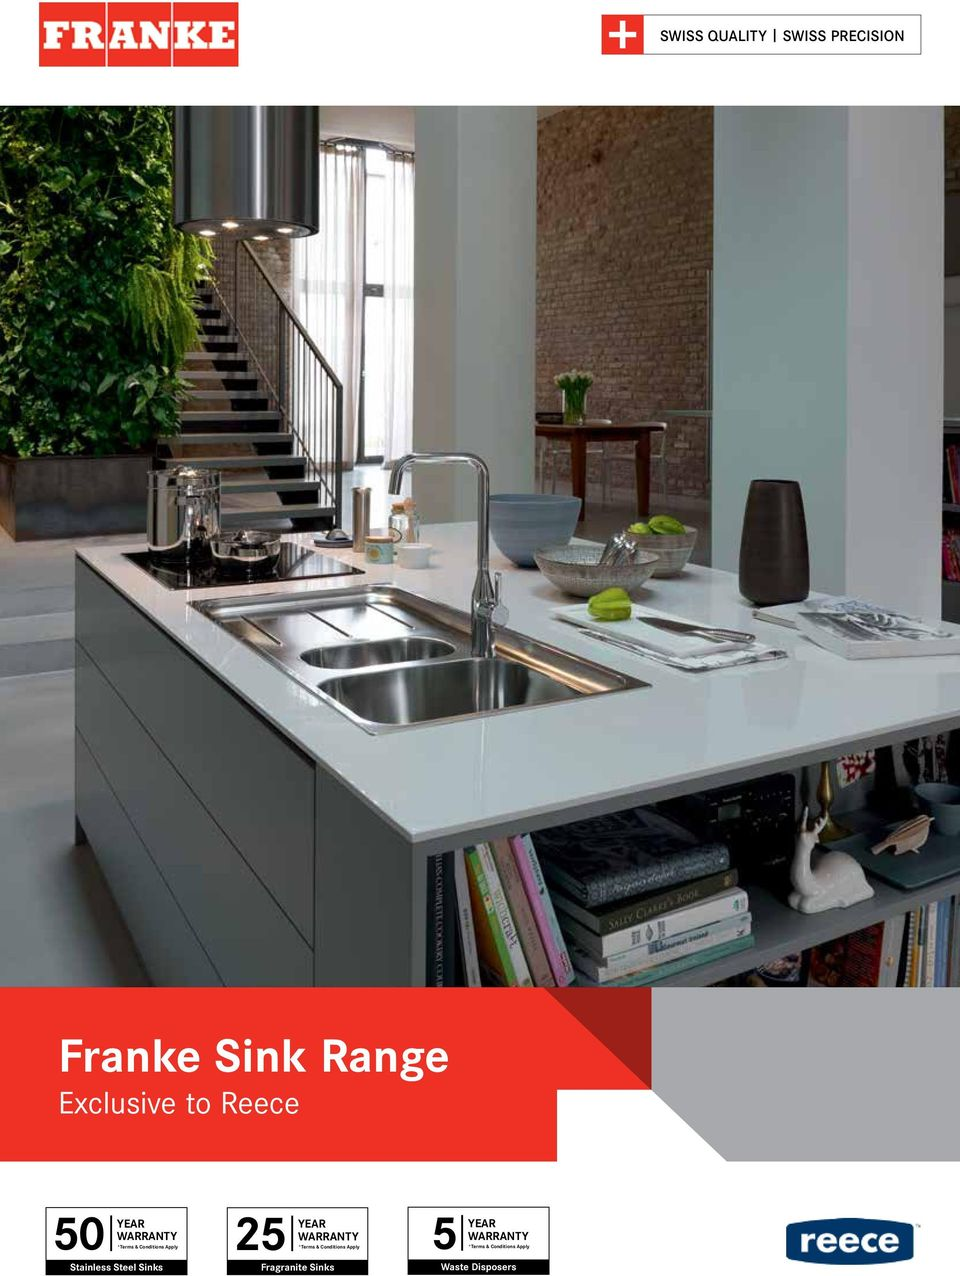 Reece Kitchen Sinks Franke sink range exclusive to reece swiss quality swiss precision stainless steel sinks 25 terms year warranty conditions workwithnaturefo